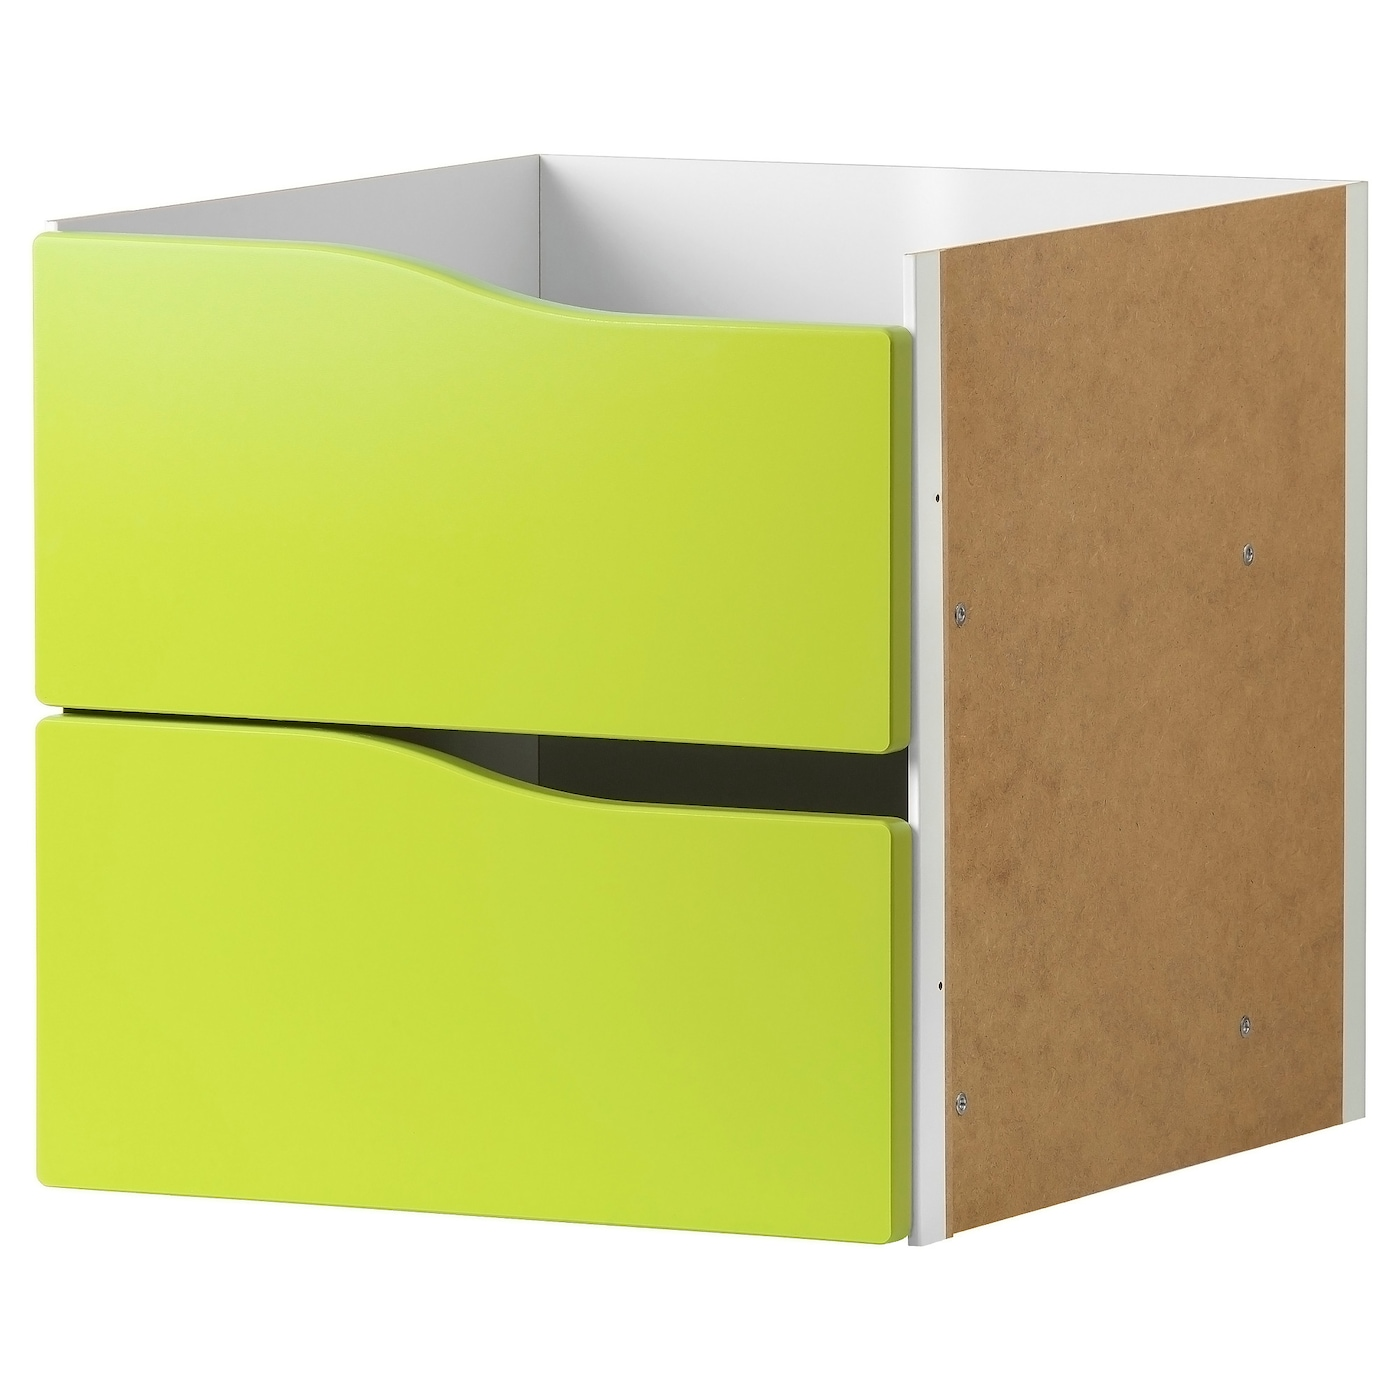 kallax insert with 2 drawers light green 33 x 33 cm ikea. Black Bedroom Furniture Sets. Home Design Ideas